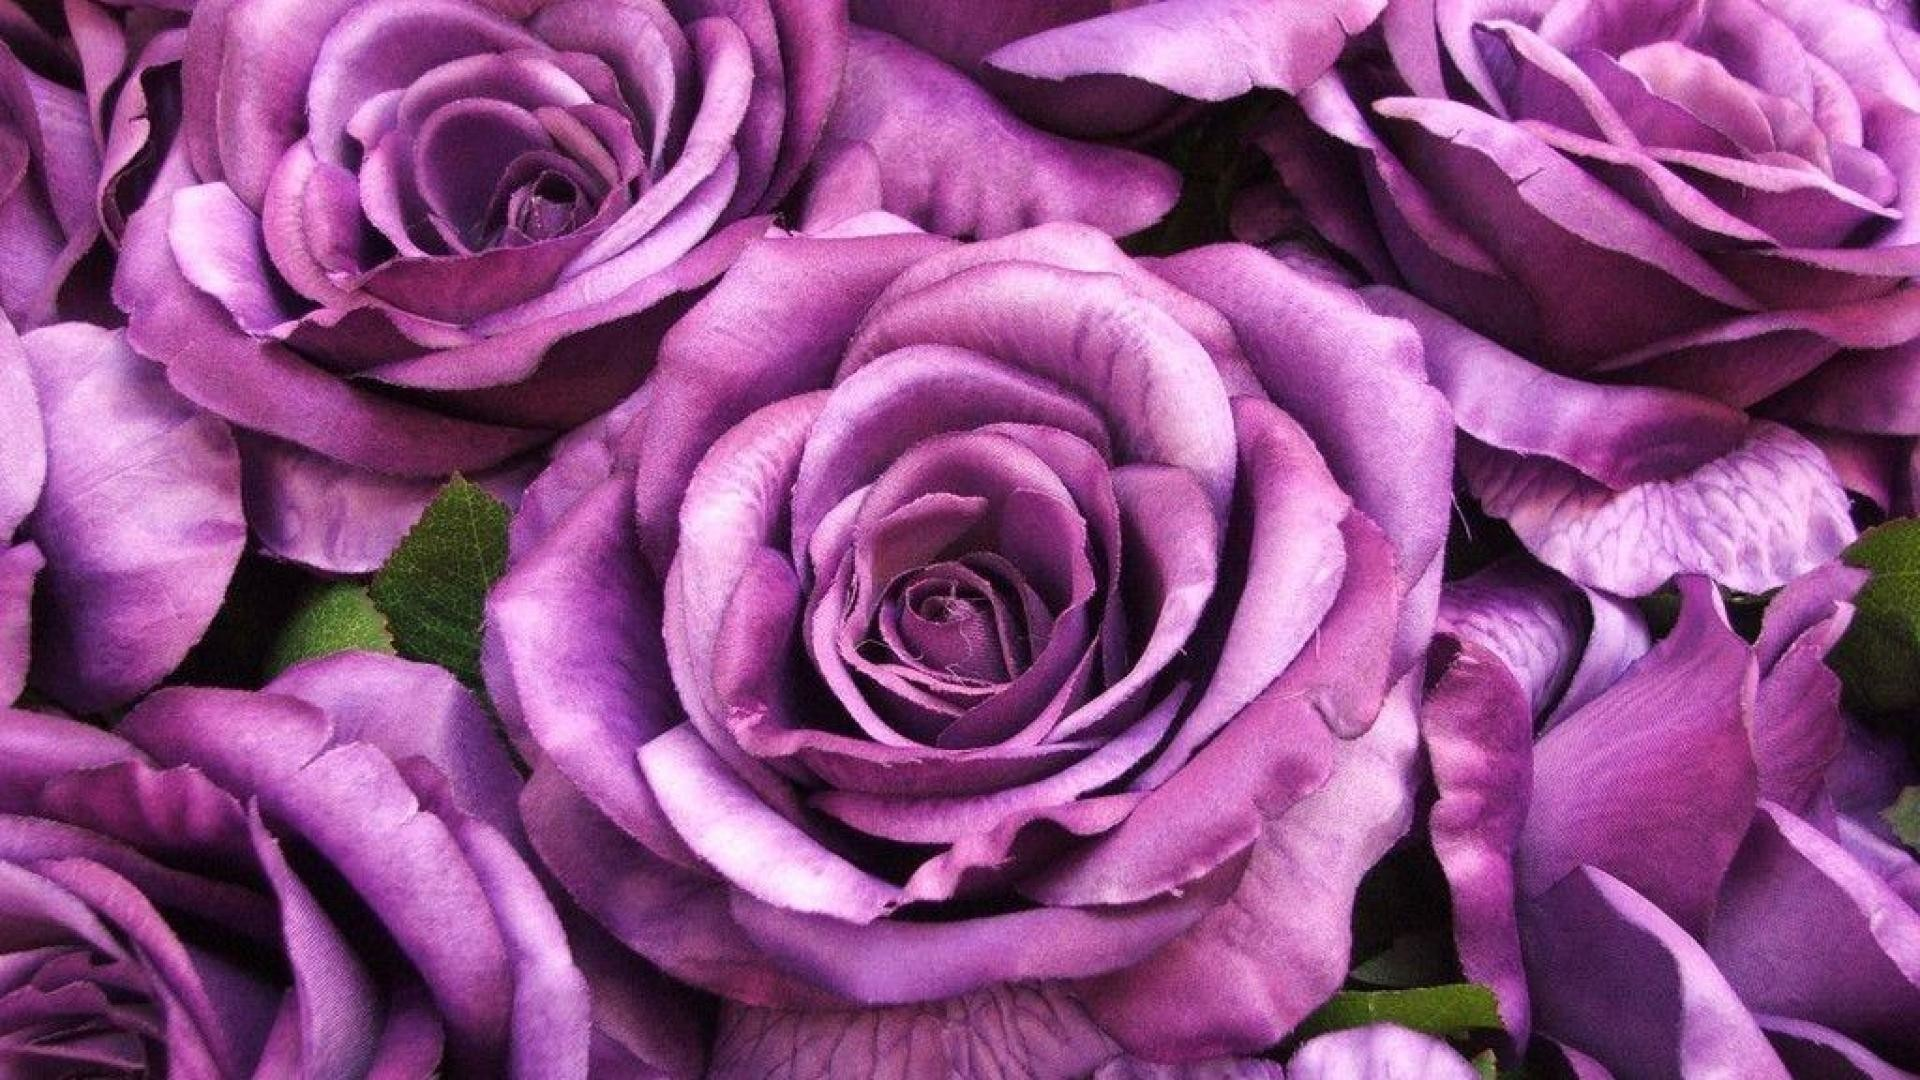 Res: 1920x1080, purple rose flowers Widescreen Wallpaper